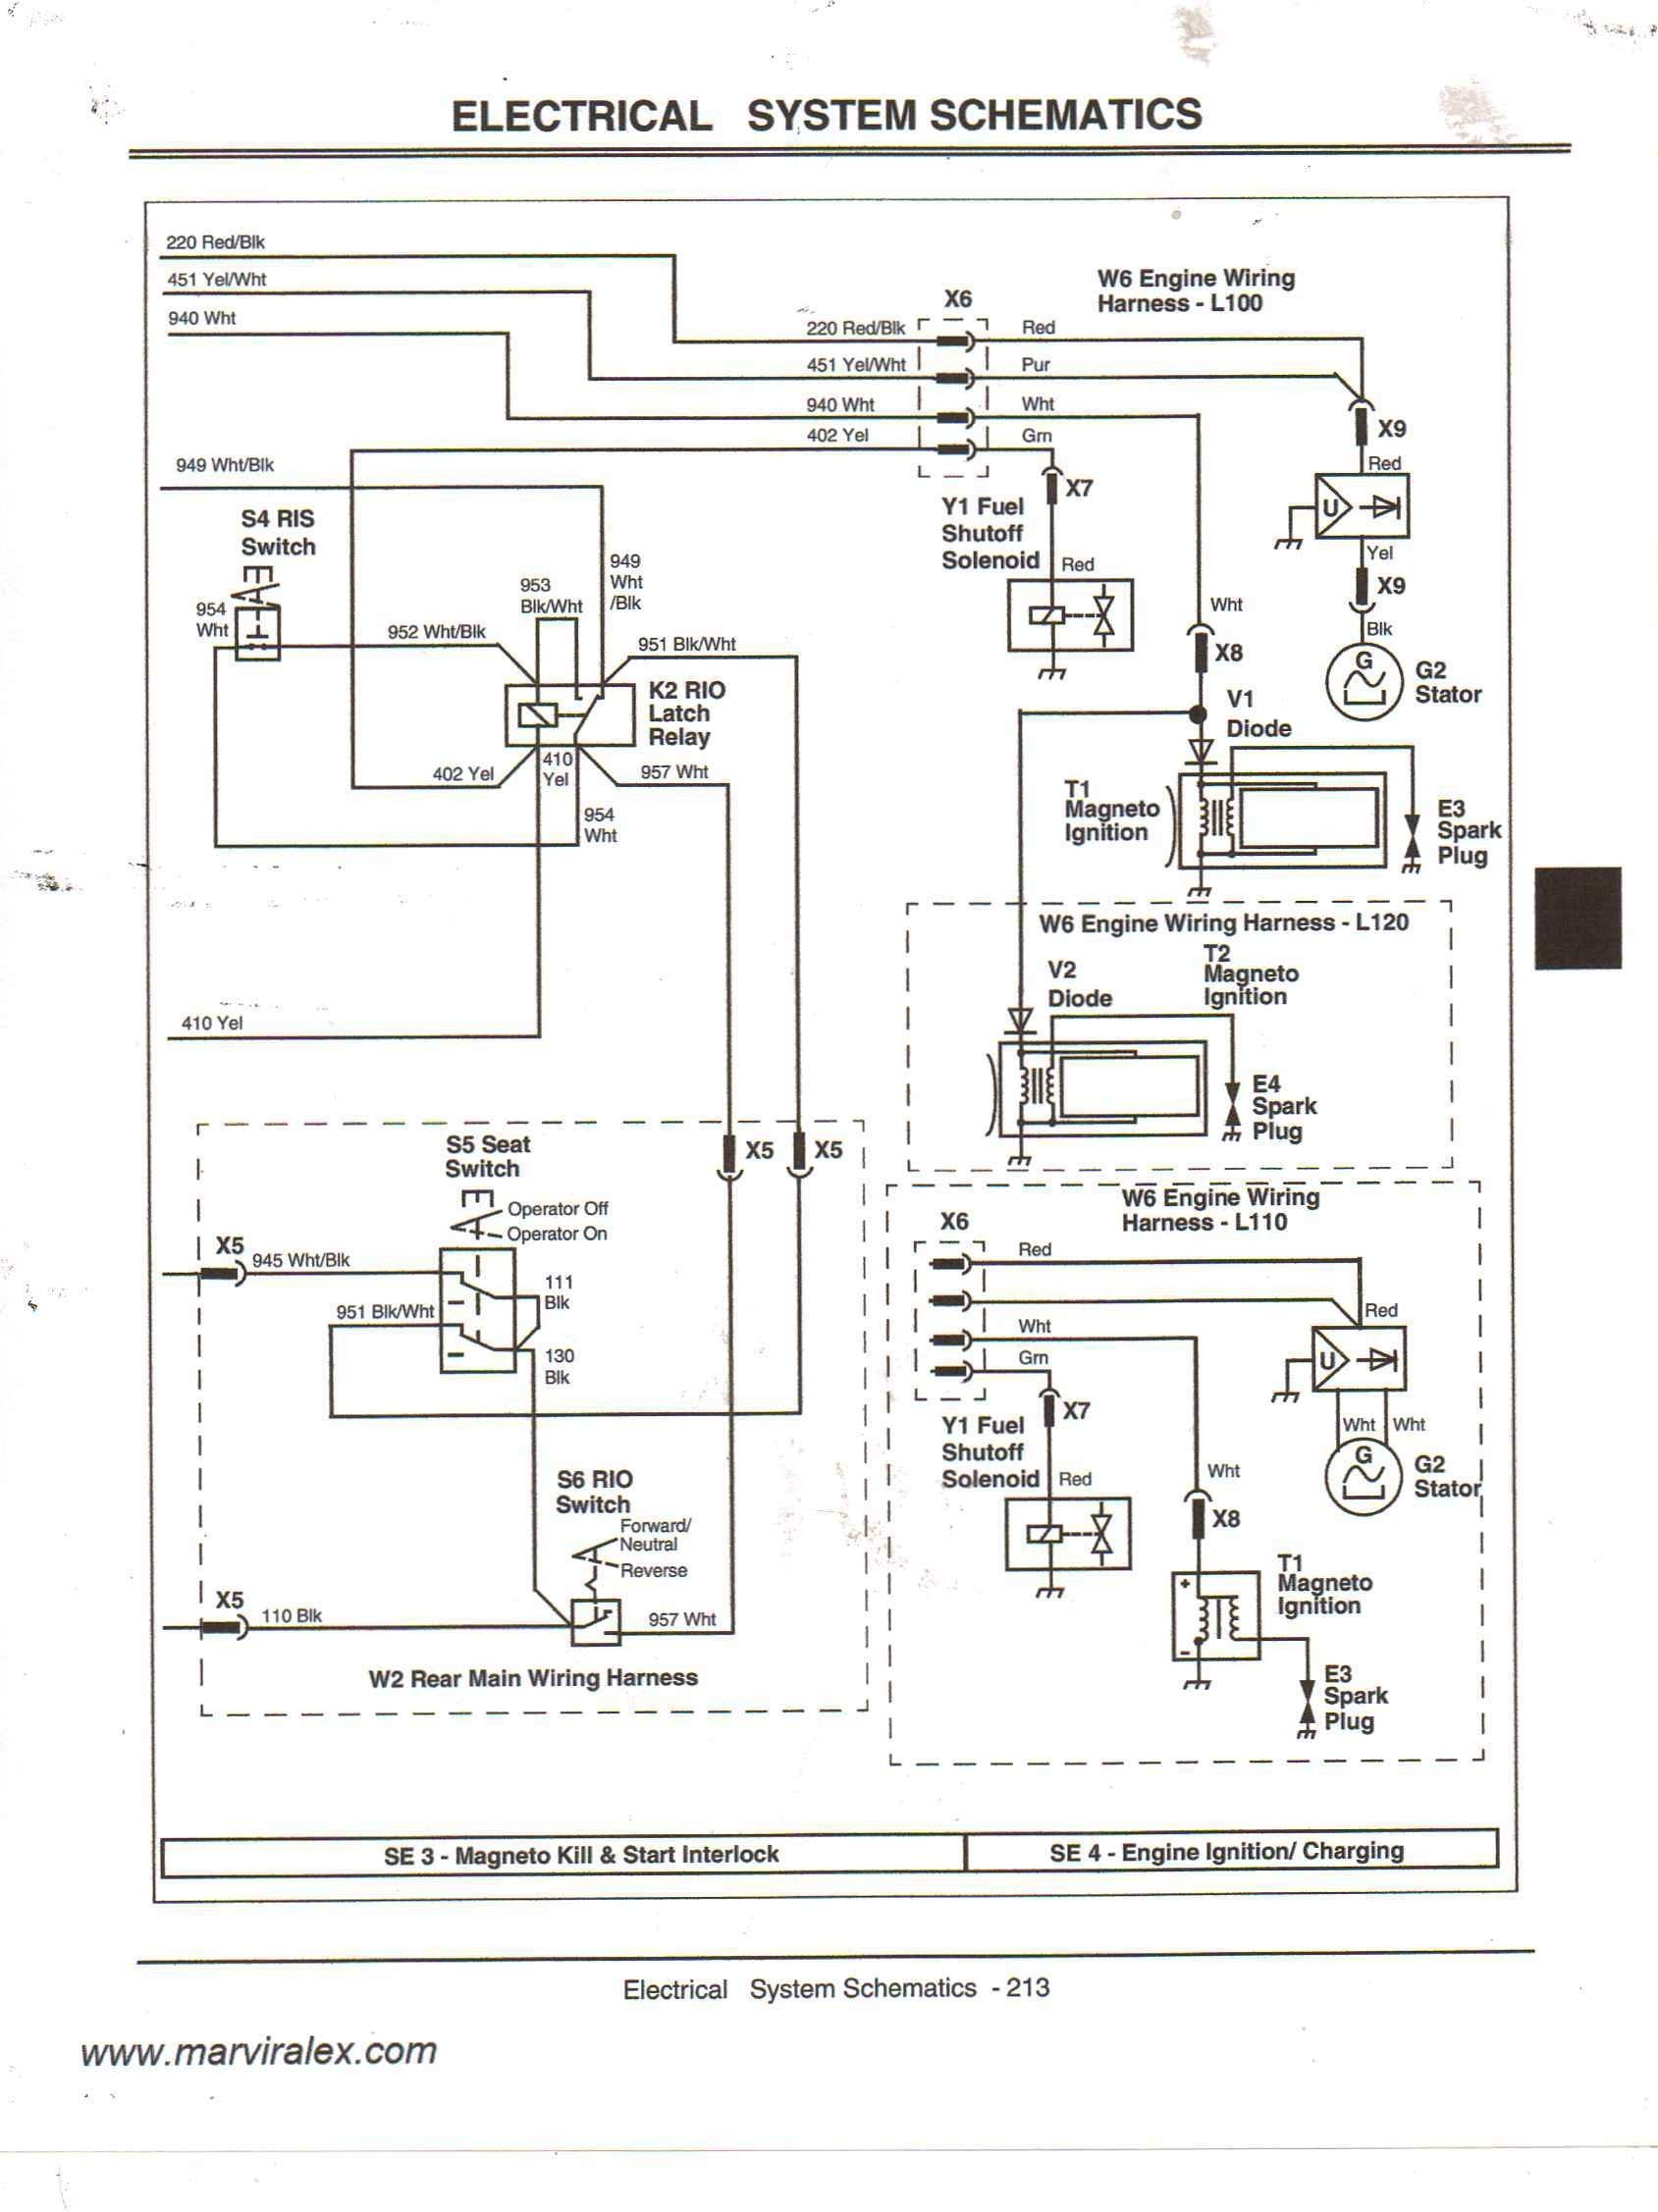 hight resolution of limitorque wiring diagrams wd mxa 01000 0100 wiring diagram database 110v schematic wiring diagram free download